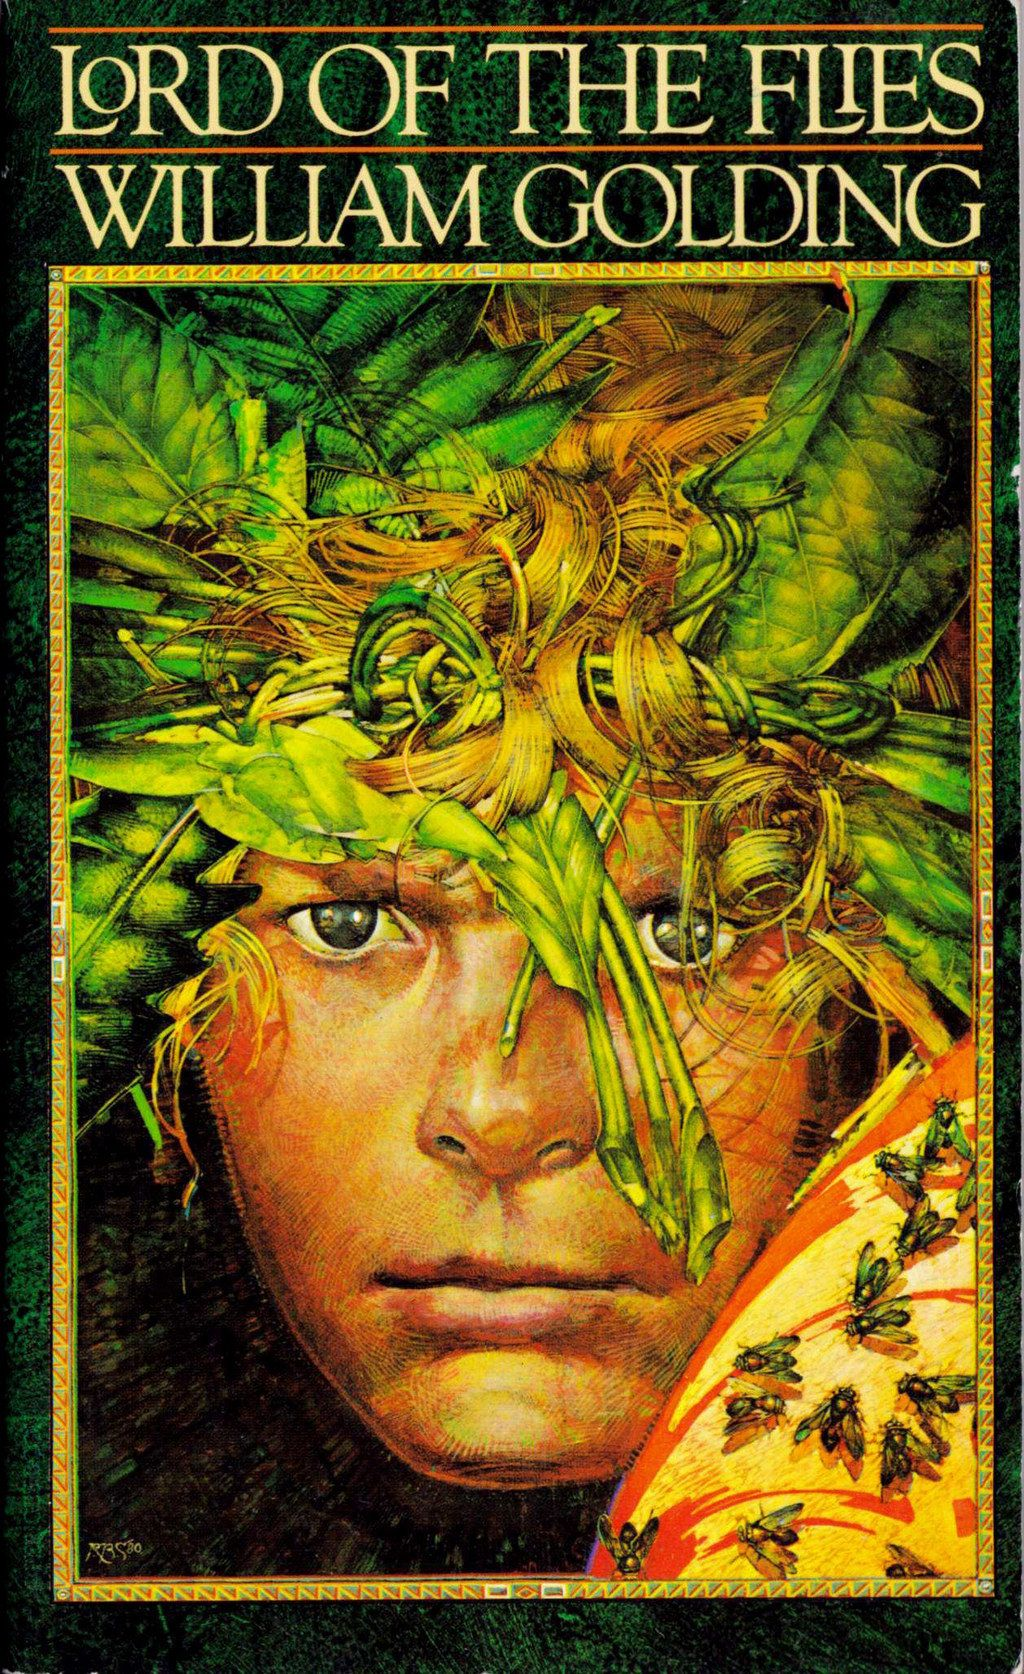 If you loved Lost, you should read William Golding's Lord of the Flies.